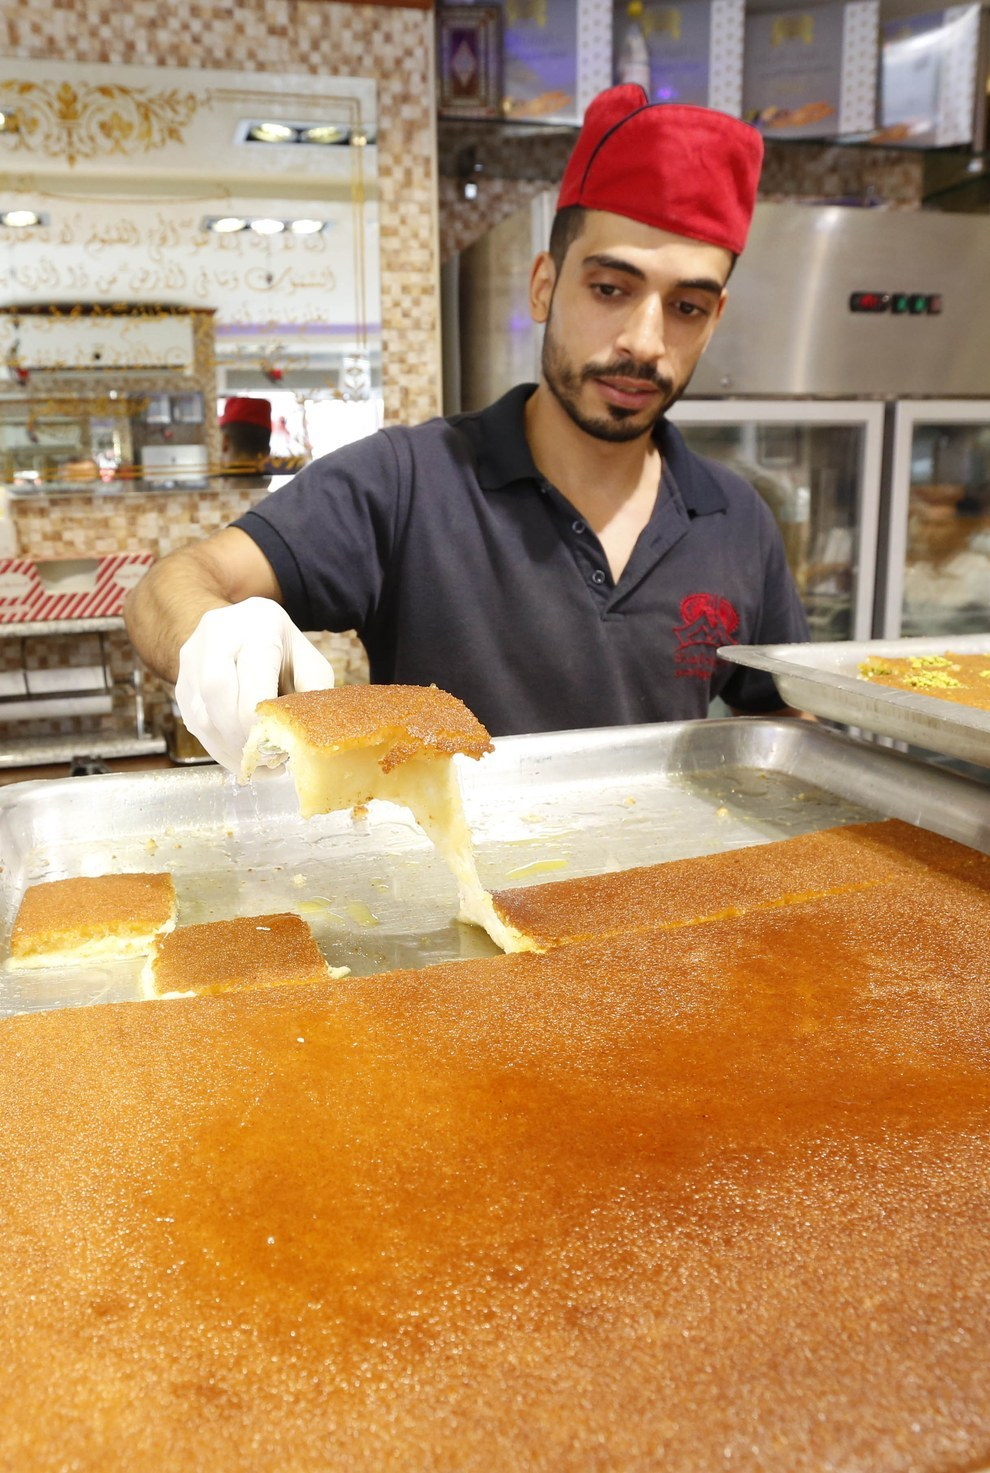 A Syrian café employee dishes out 'Kunafeh' a traditional sweet made with cheese, a dessert popular during Eid. relatives or going (Anwar Amro, Getty Images)